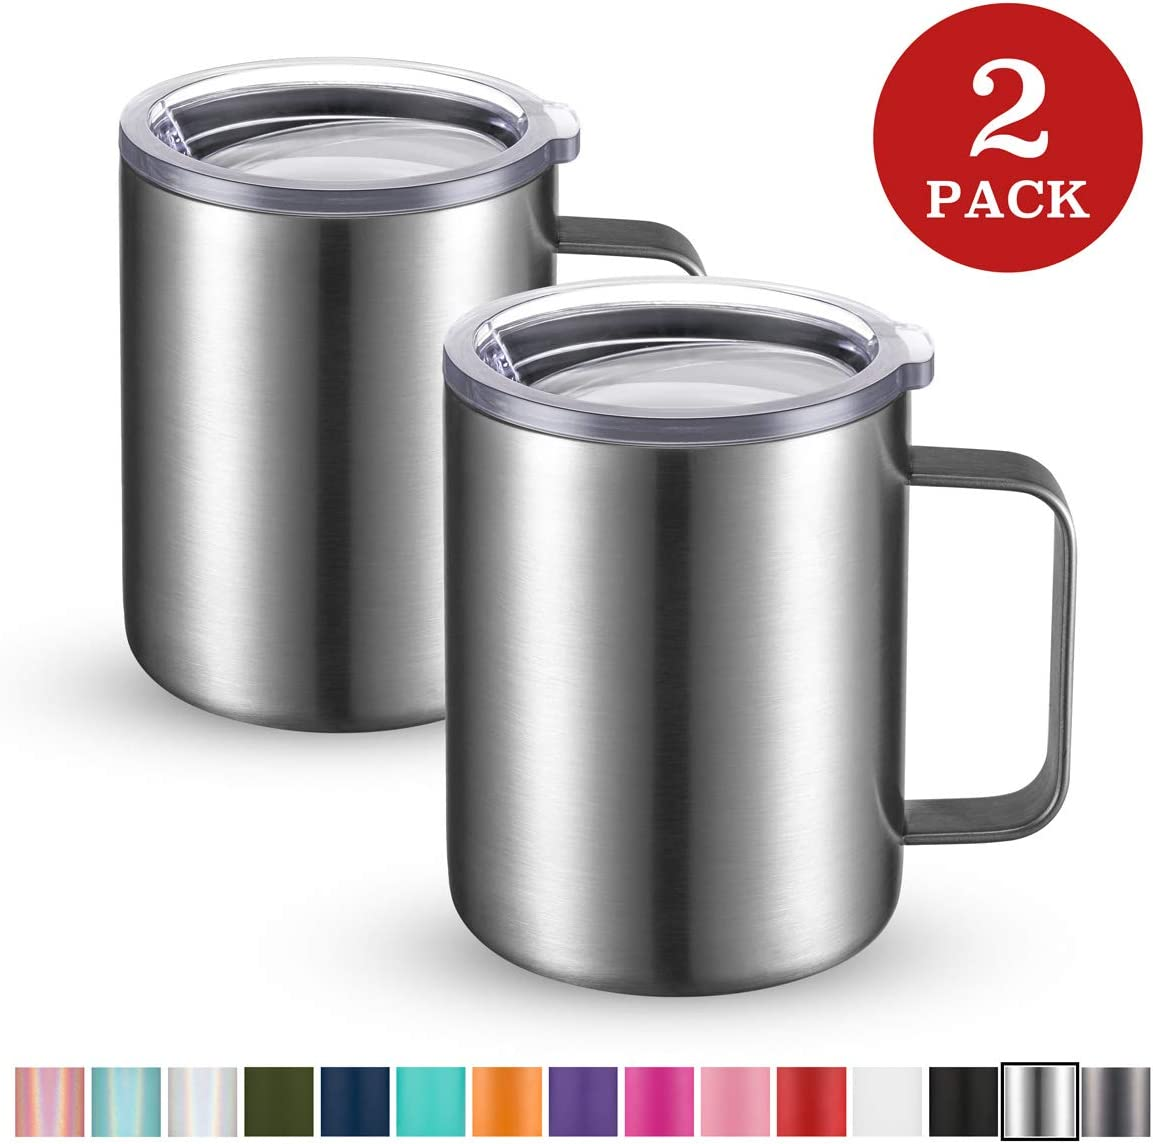 Civago Stainless Steel Coffee Mug Cup with Handle, 12 oz Double Wall Vacuum Insulated Tumbler with Lid Travel Friendly (Stainless, 2 Pack)